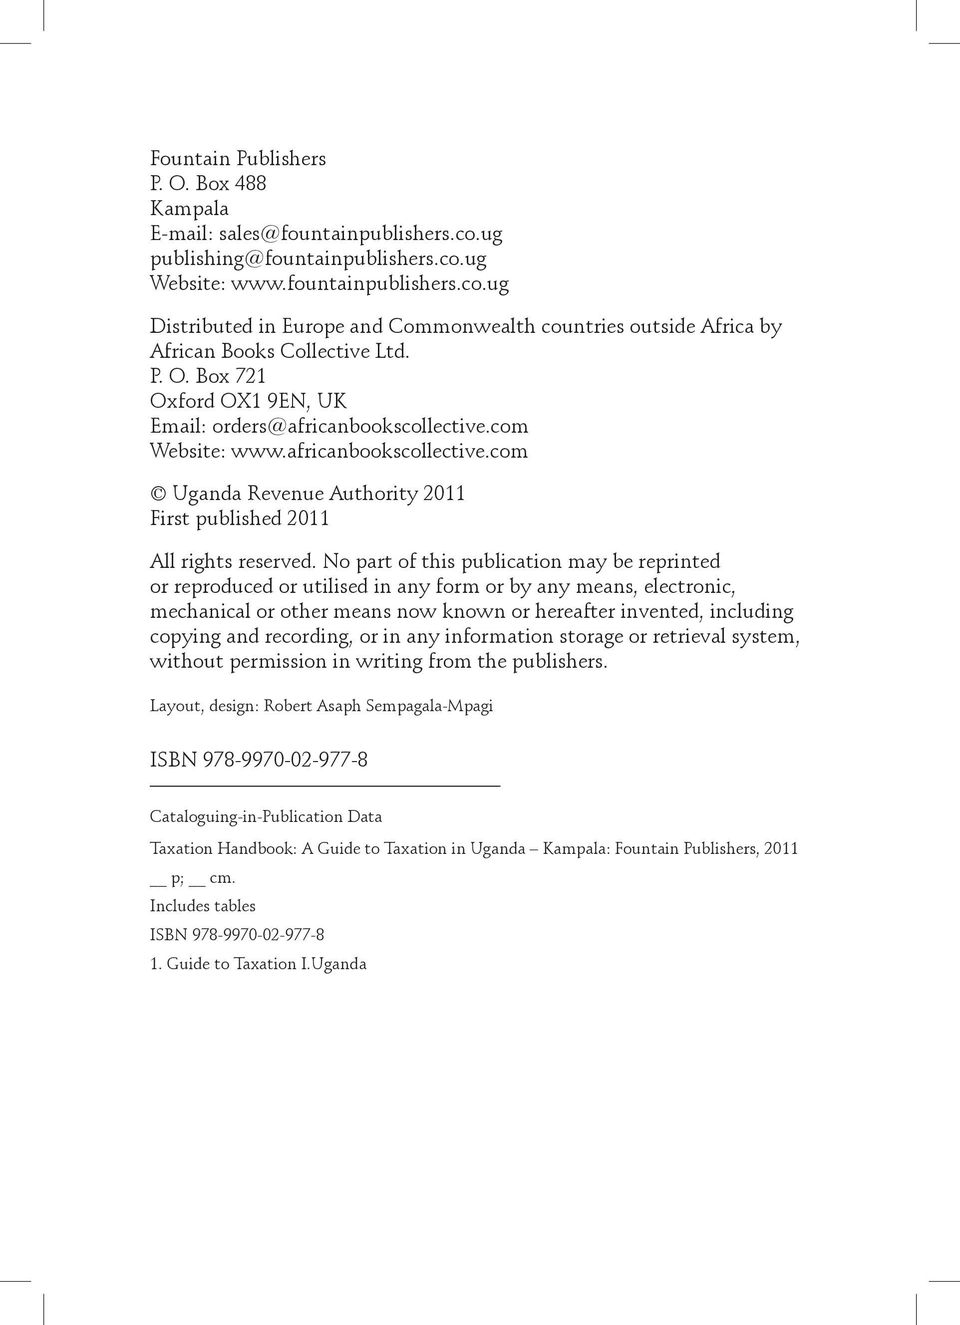 No part of this publication may be reprinted or reproduced or utilised in any form or by any means, electronic, mechanical or other means now known or hereafter invented, including copying and